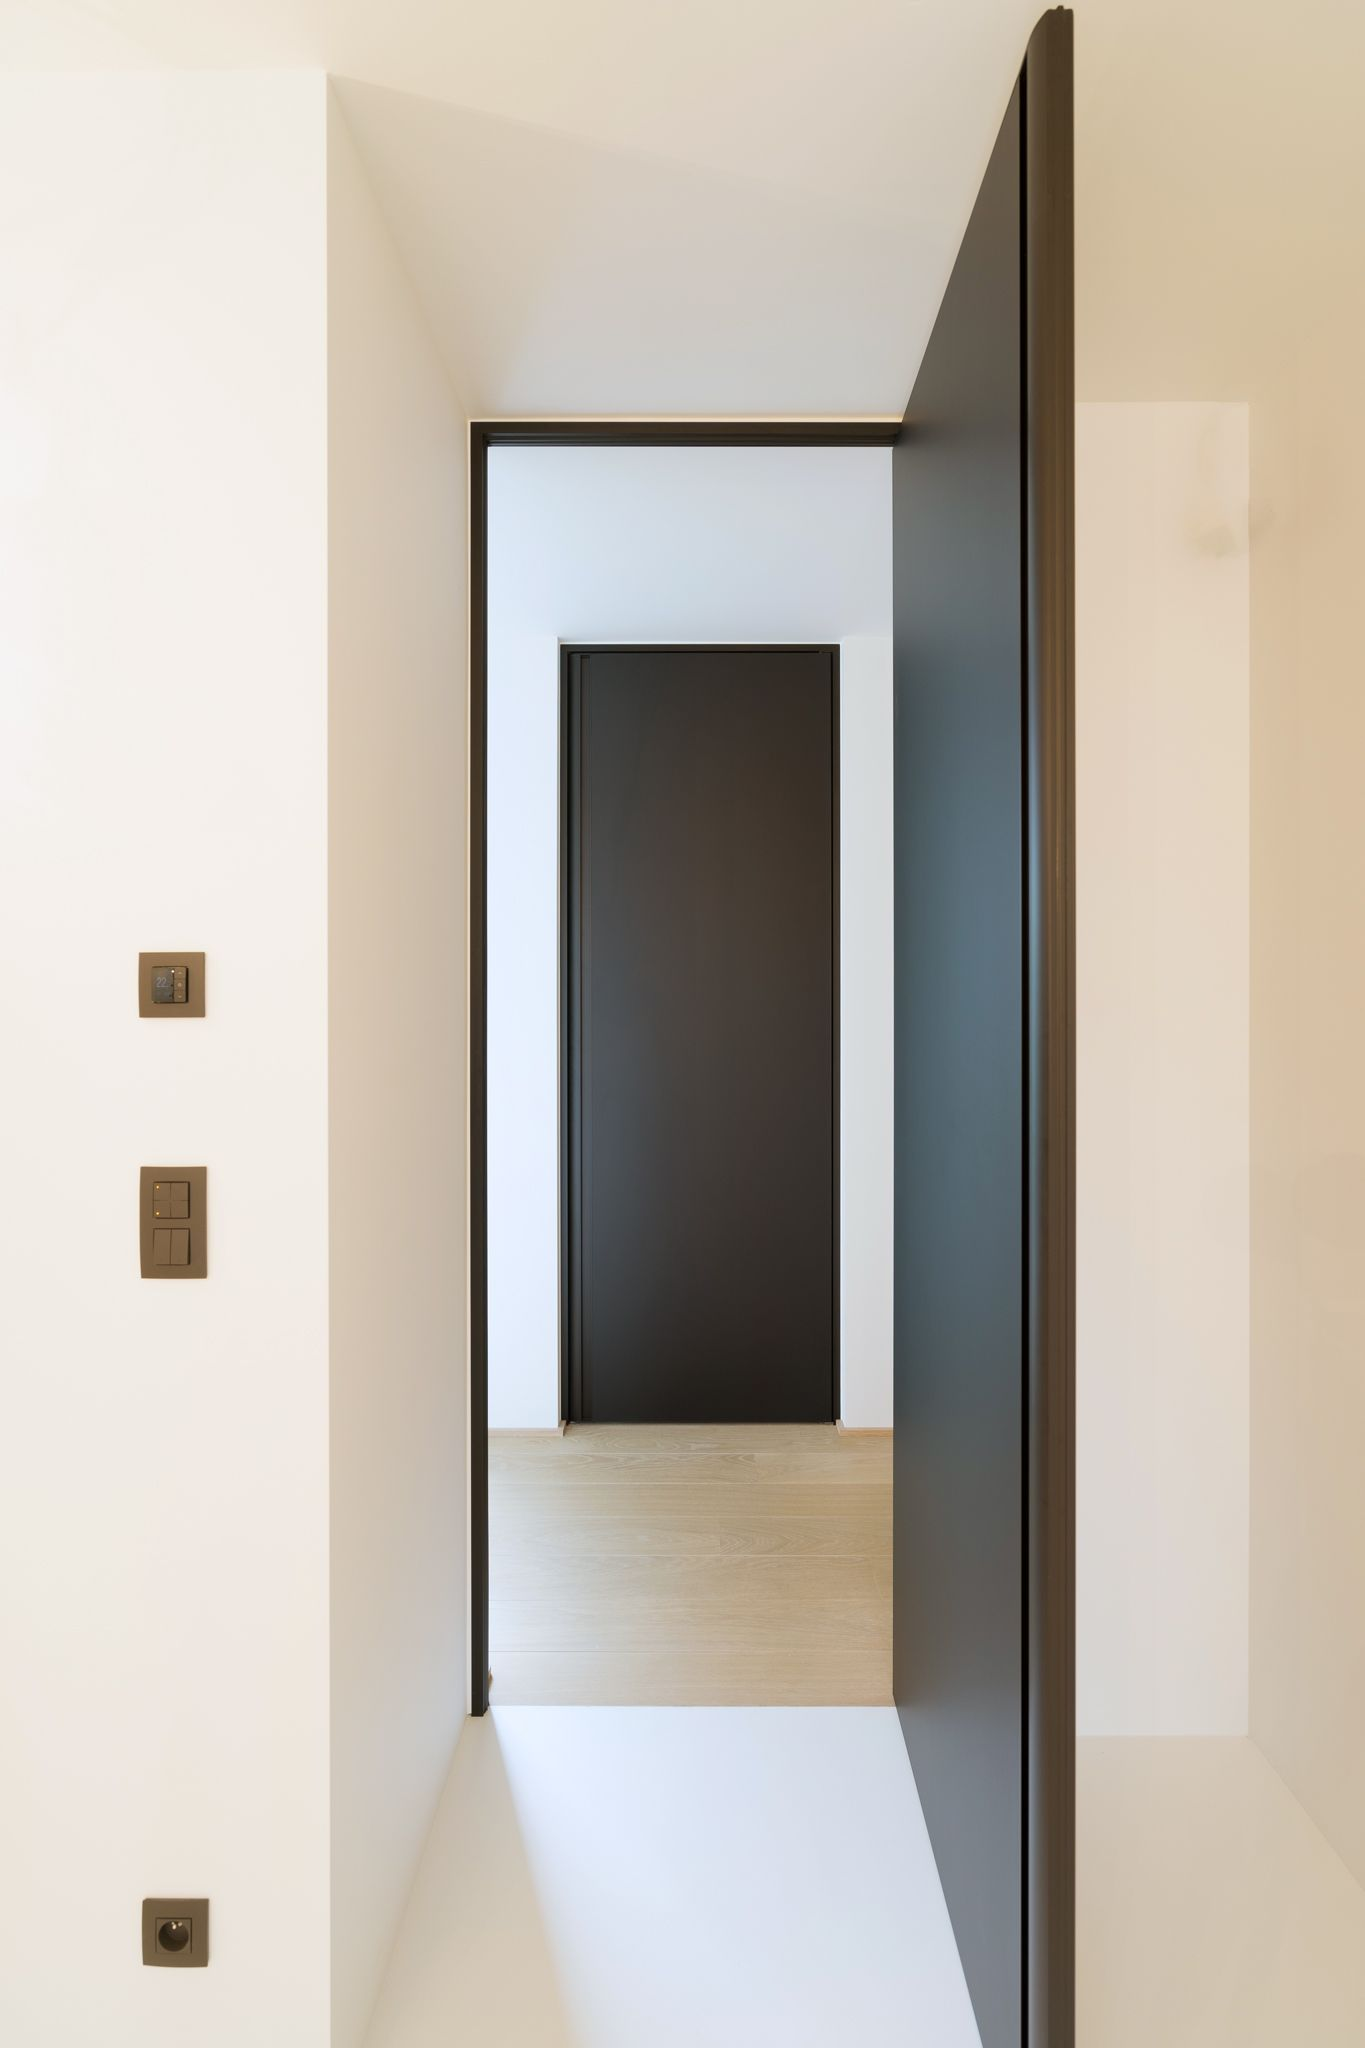 Exceptional Black Door From Floor To Ceiling With A Black Doorframe And Built In Handle.